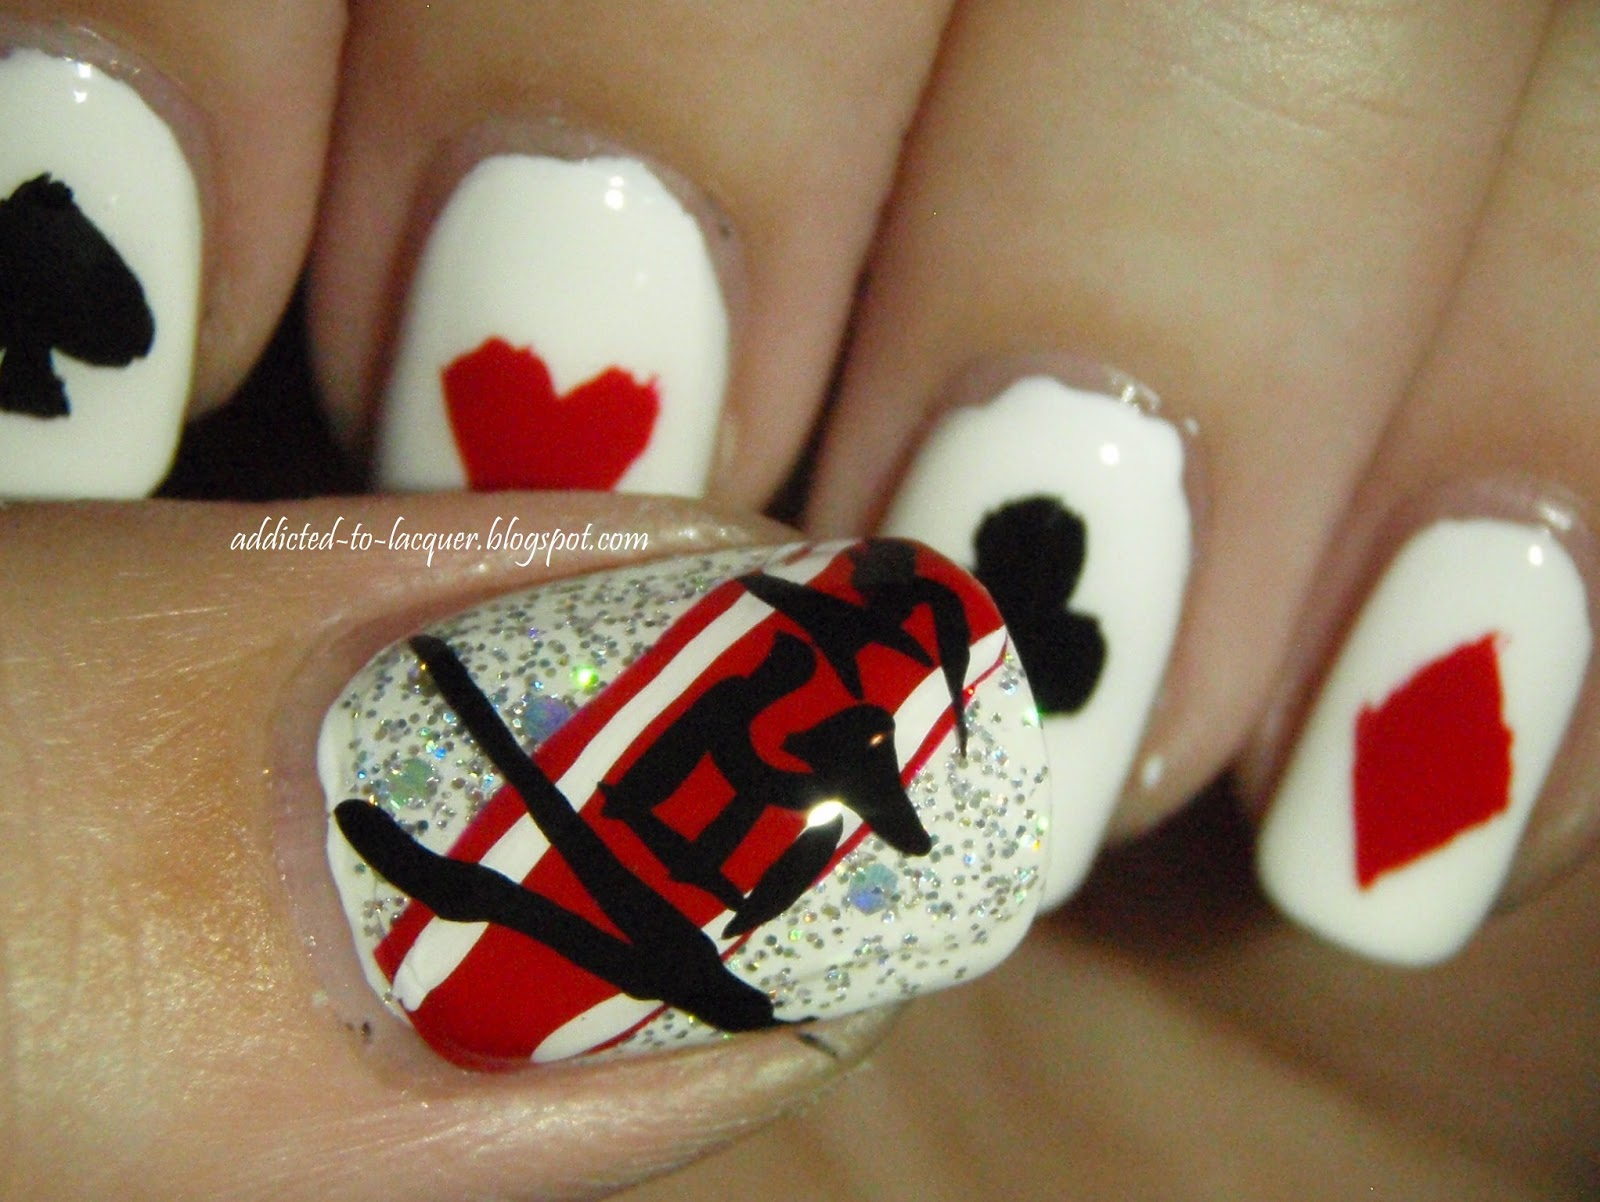 Las vegas nail designs choice image nail art and nail design ideas las vegas nail art designs choice image nail art and nail design nail designs for vegas prinsesfo Images